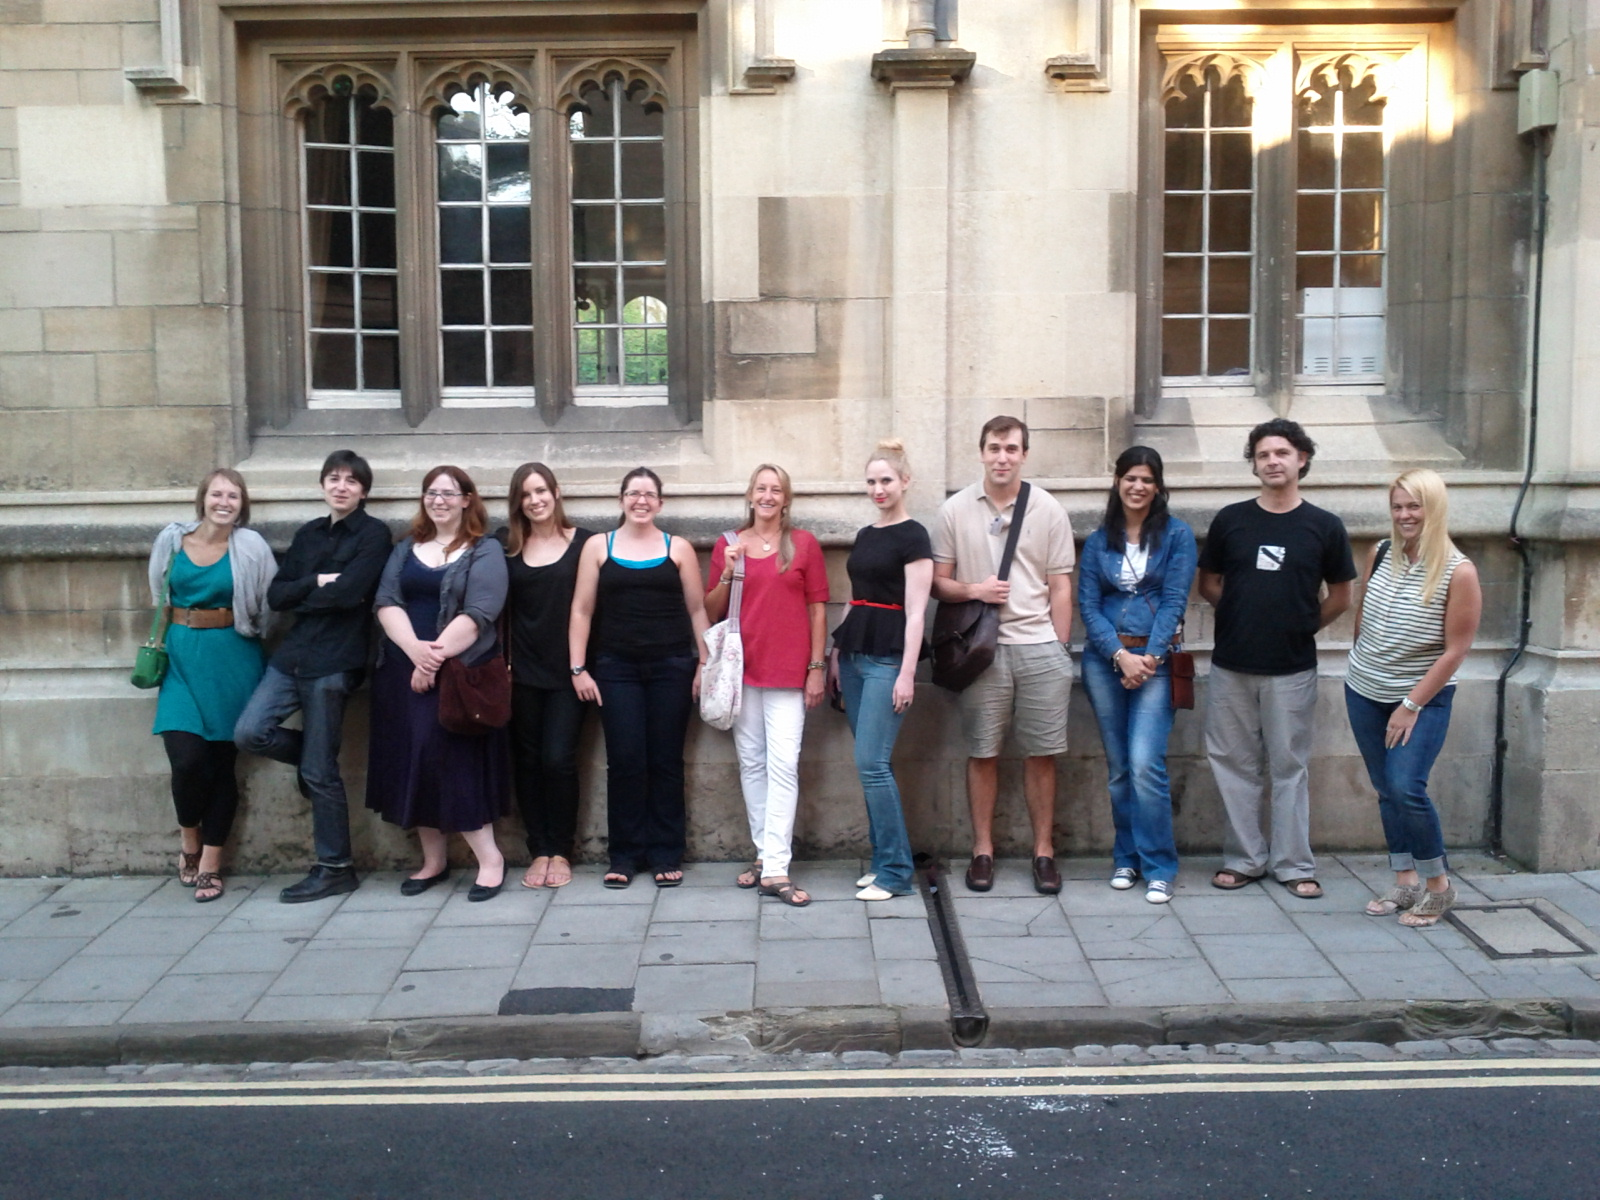 oxford university creative writing diploma The london school of journalism provides journalism courses, freelance classes and creative writing courses by distance learning, and as evening classes, short day-time courses and postgraduate diploma courses.